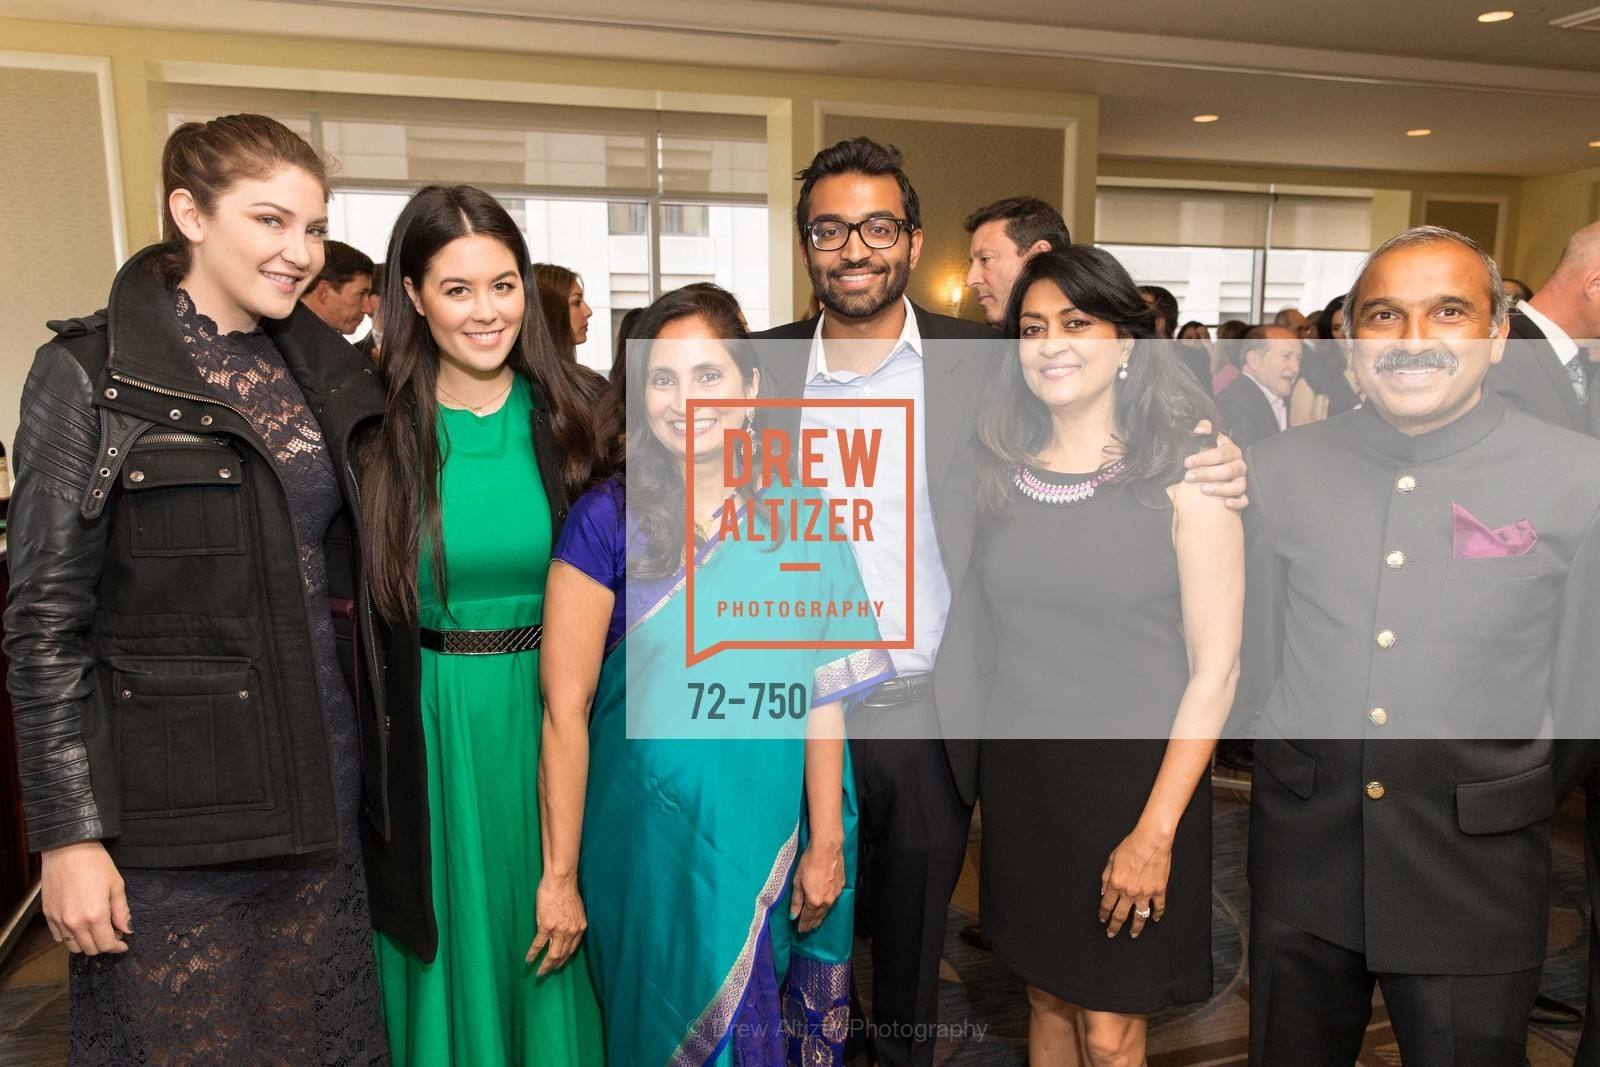 Melody McCloskey, Michelle Dong, Padmasree Warrior, Rohan Shah, Lata Krishnan, Mohan Warrier, WORLD AFFAIRS COUNCIL Awards Dinner, US, May 27th, 2015,Drew Altizer, Drew Altizer Photography, full-service agency, private events, San Francisco photographer, photographer california